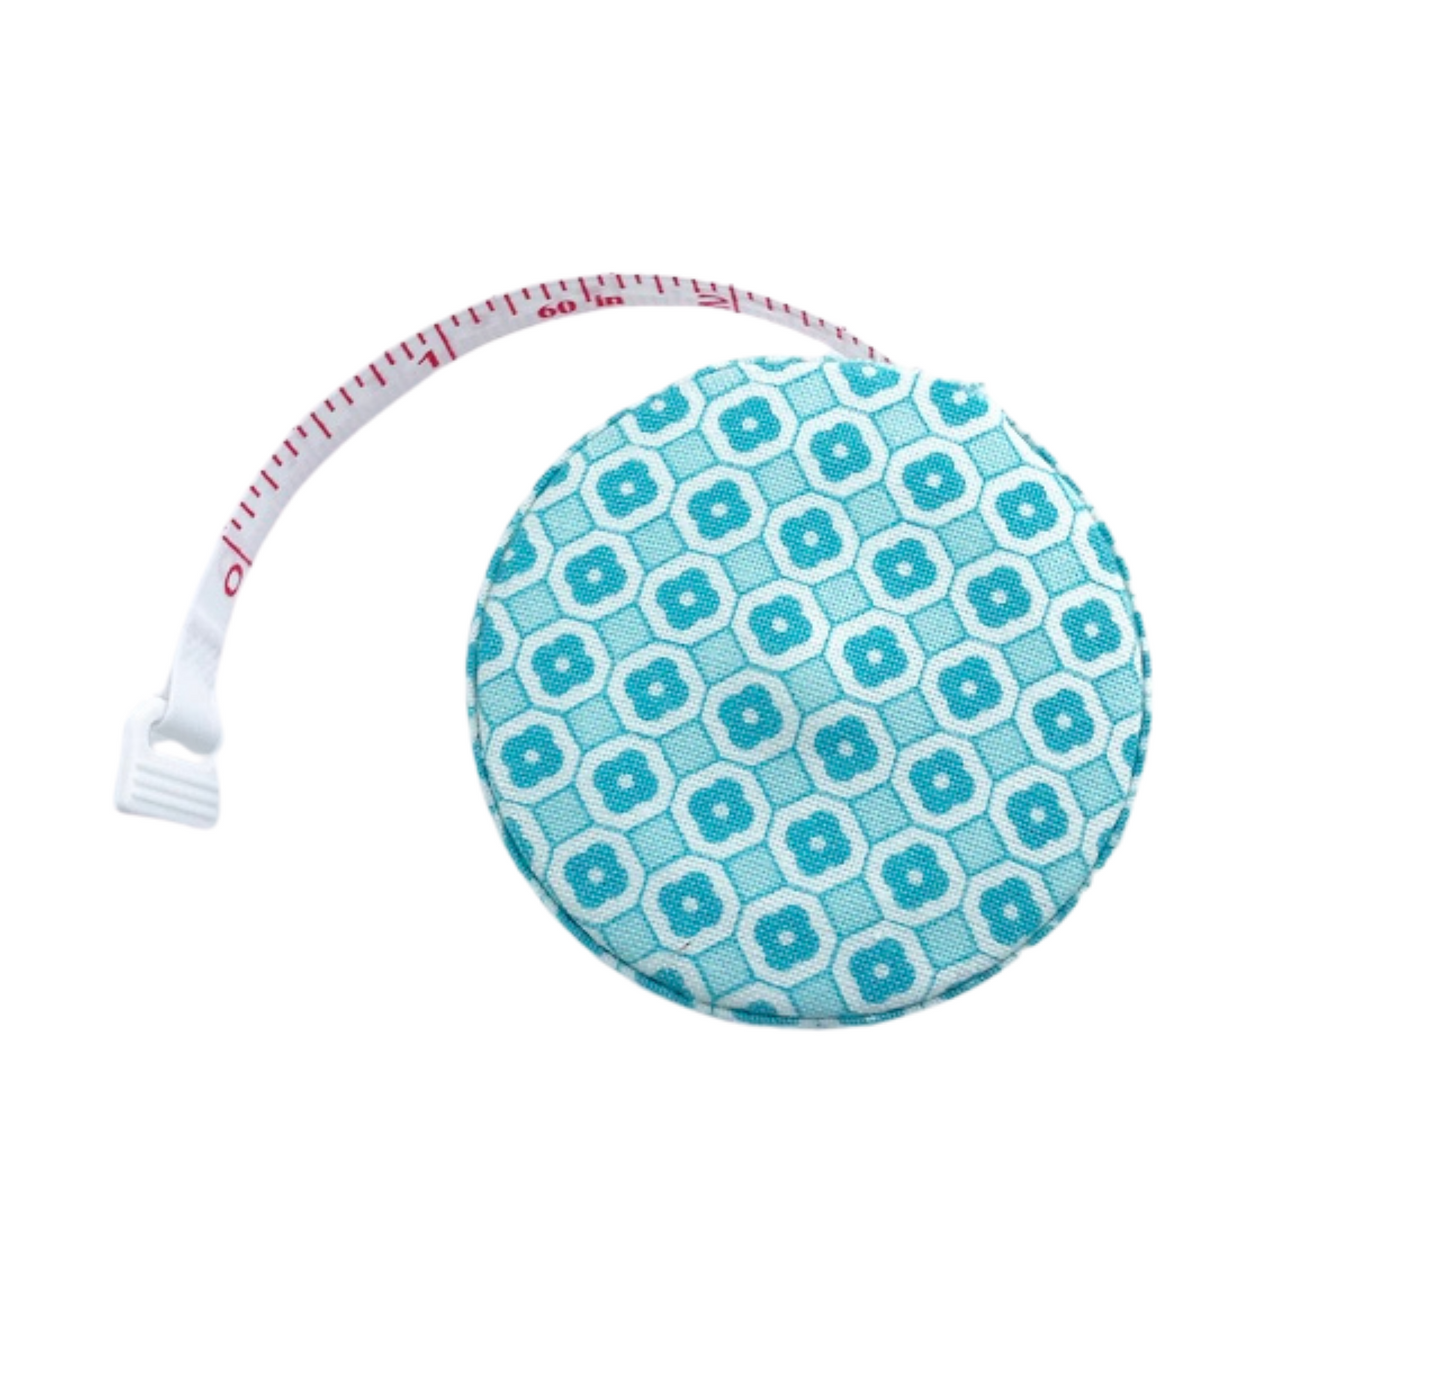 Fabric Covered Tape Measure - Teal